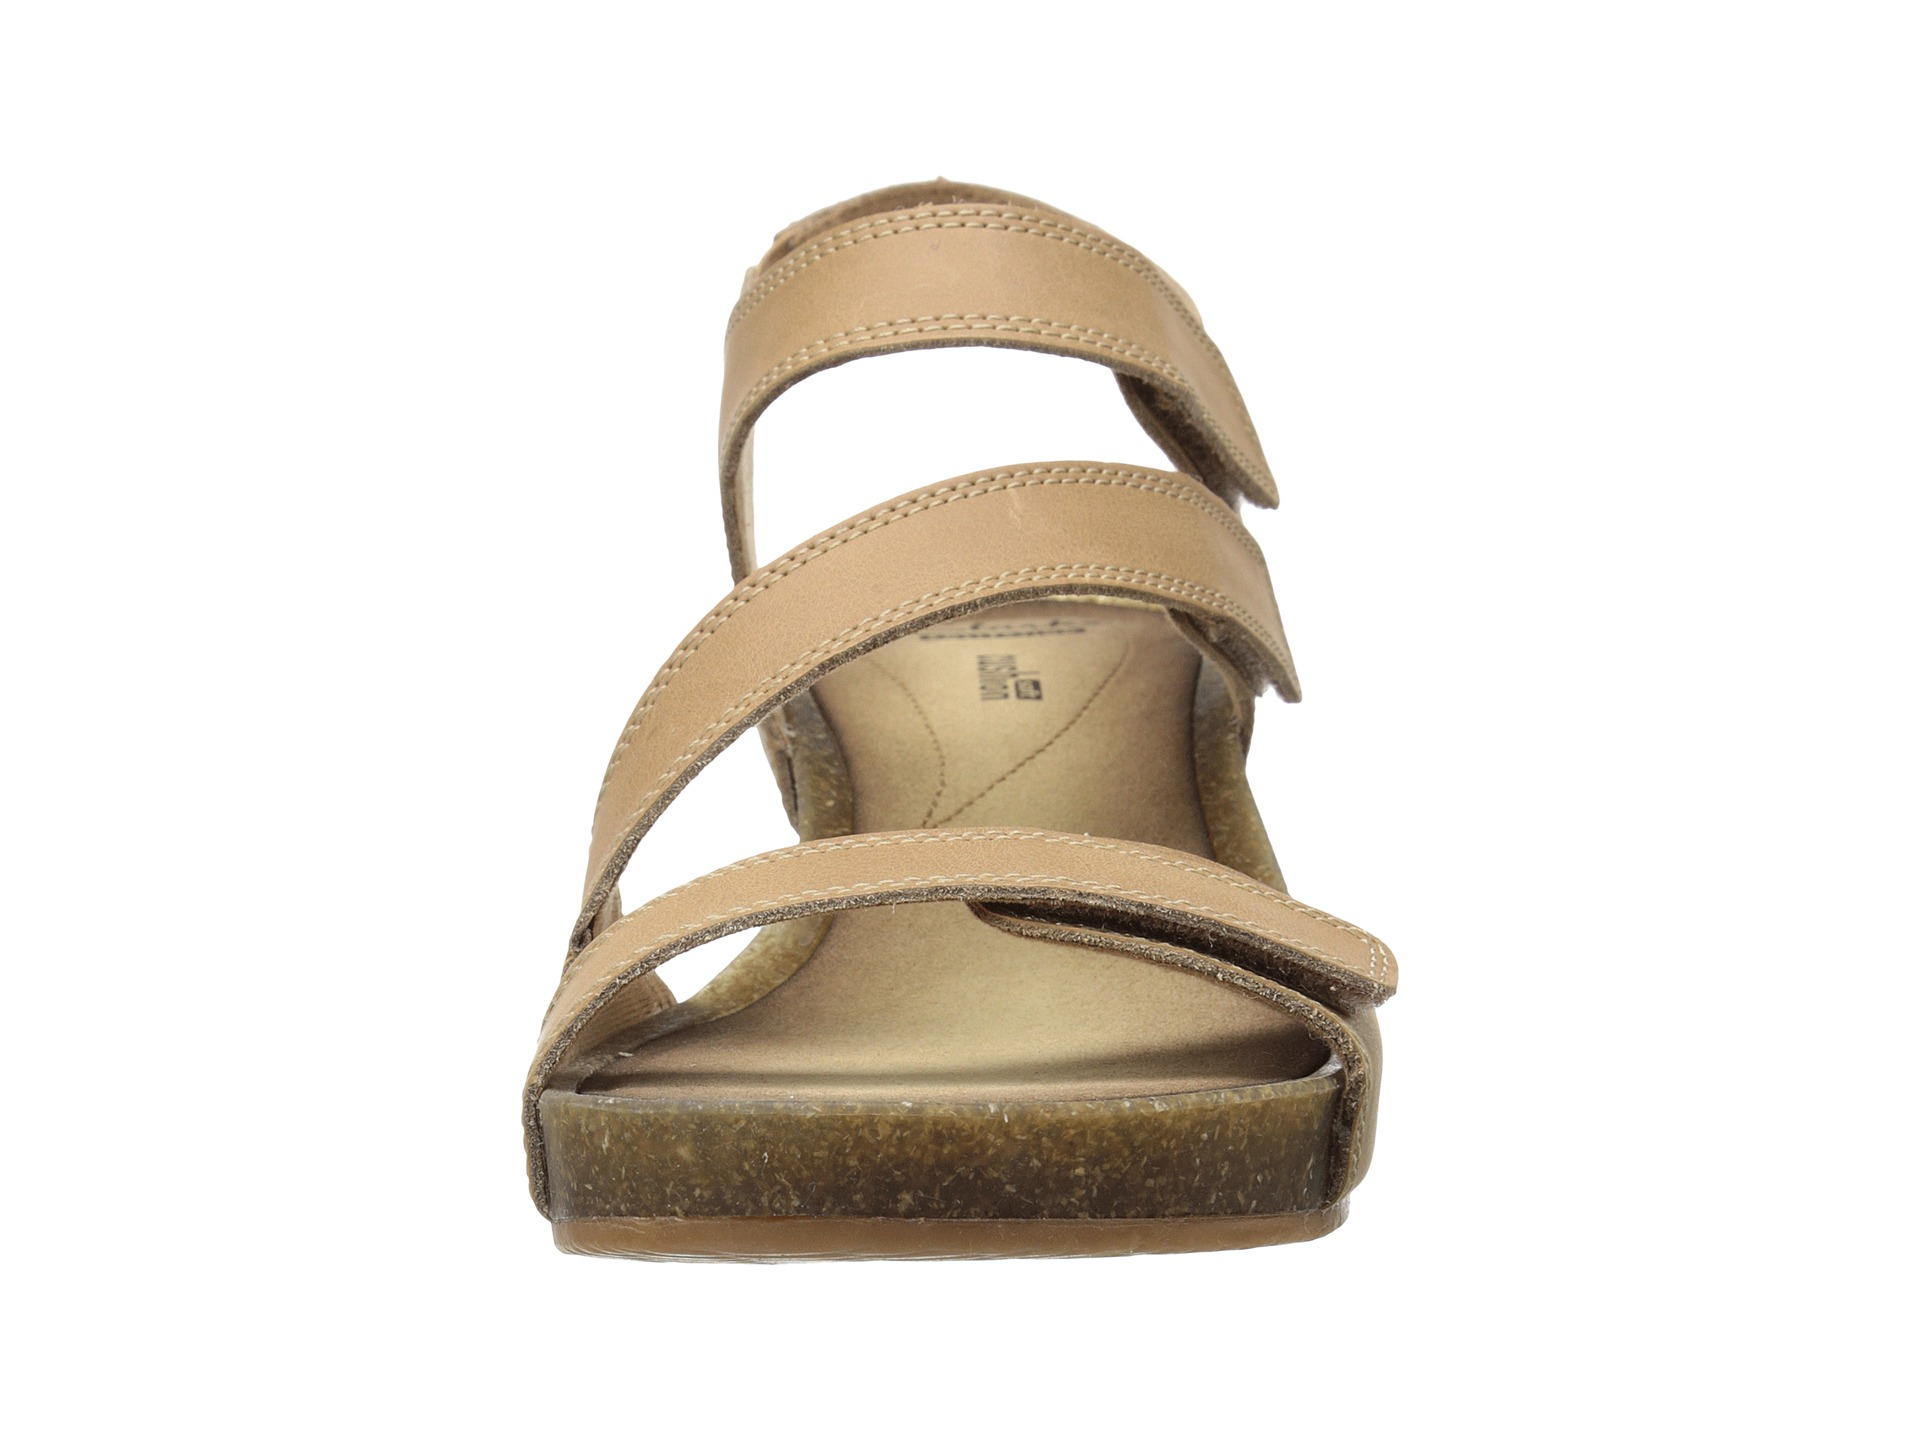 4b8302a3ad8 Lyst - Clarks Orient Sea Leather Sandals in White